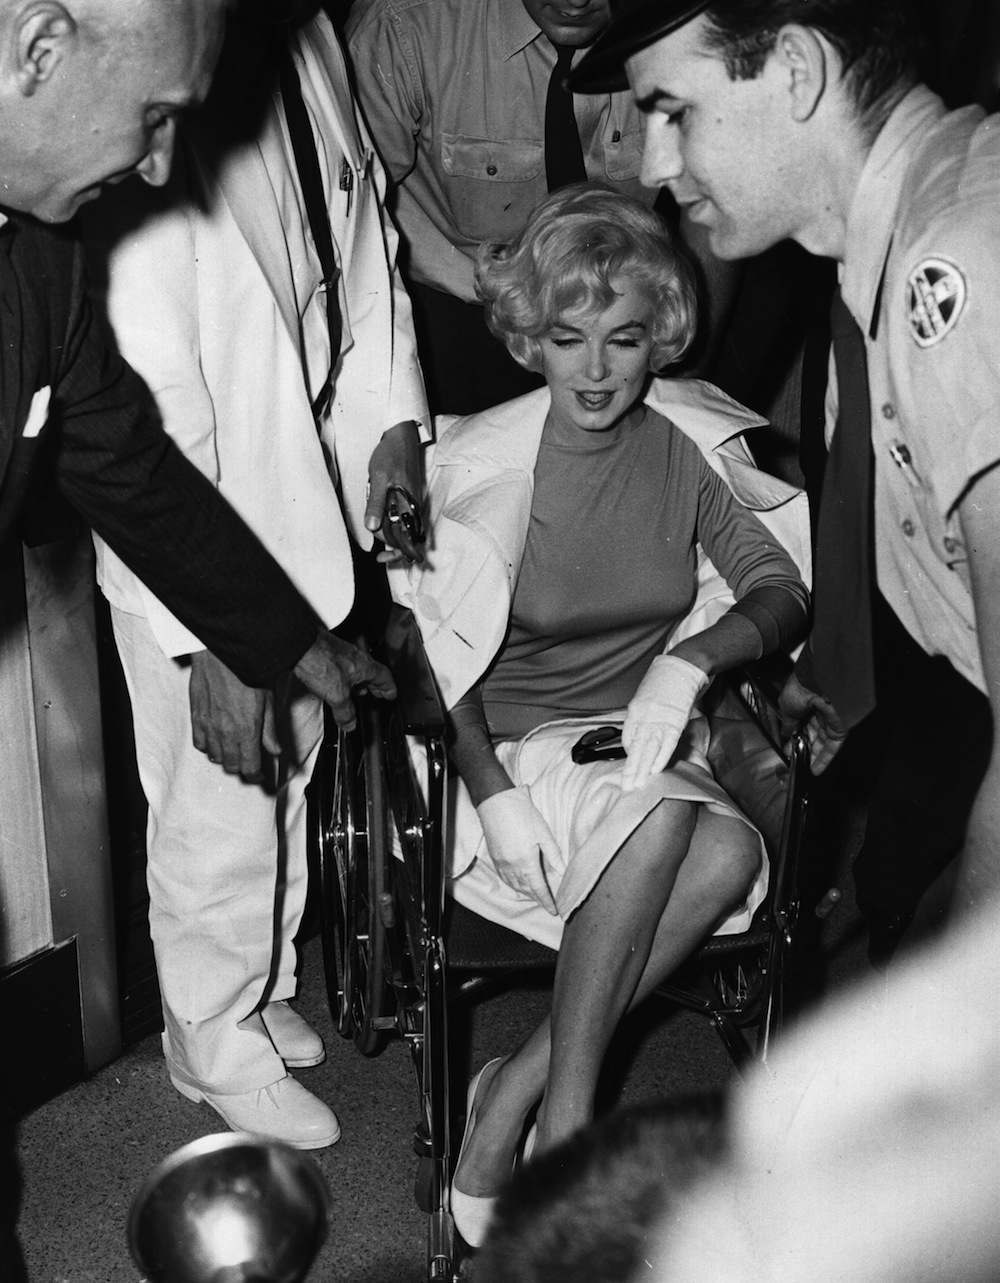 1961. American film star Marilyn Monroe (Norma Jean Mortenson or Norma Jean Baker, 1926 - 1962) leaving the Pollyclinic in Manhattan, after her gall bladder operation.  Original Publication: People Disc - HW0705   (Photo by Express Newspapers/Getty Images)